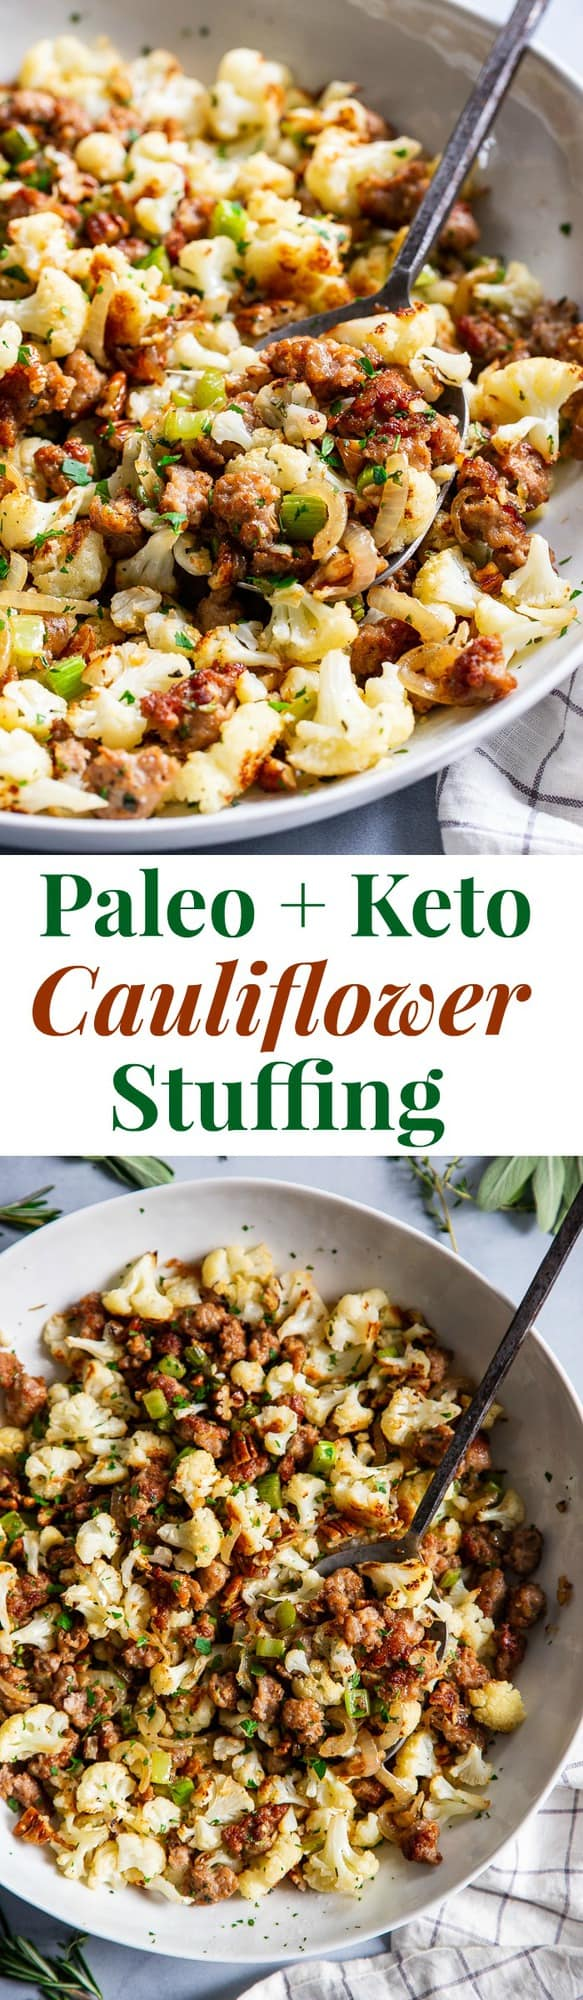 This cauliflower stuffing is packed with goodies like crispy browned sausage, caramelized onions, toasty pecans and savory herbs.  It's low carb, Whole30 compliant and keto friendly.  It's sure to be a total showstopper at your holiday table, even for the non-paleo crowd!